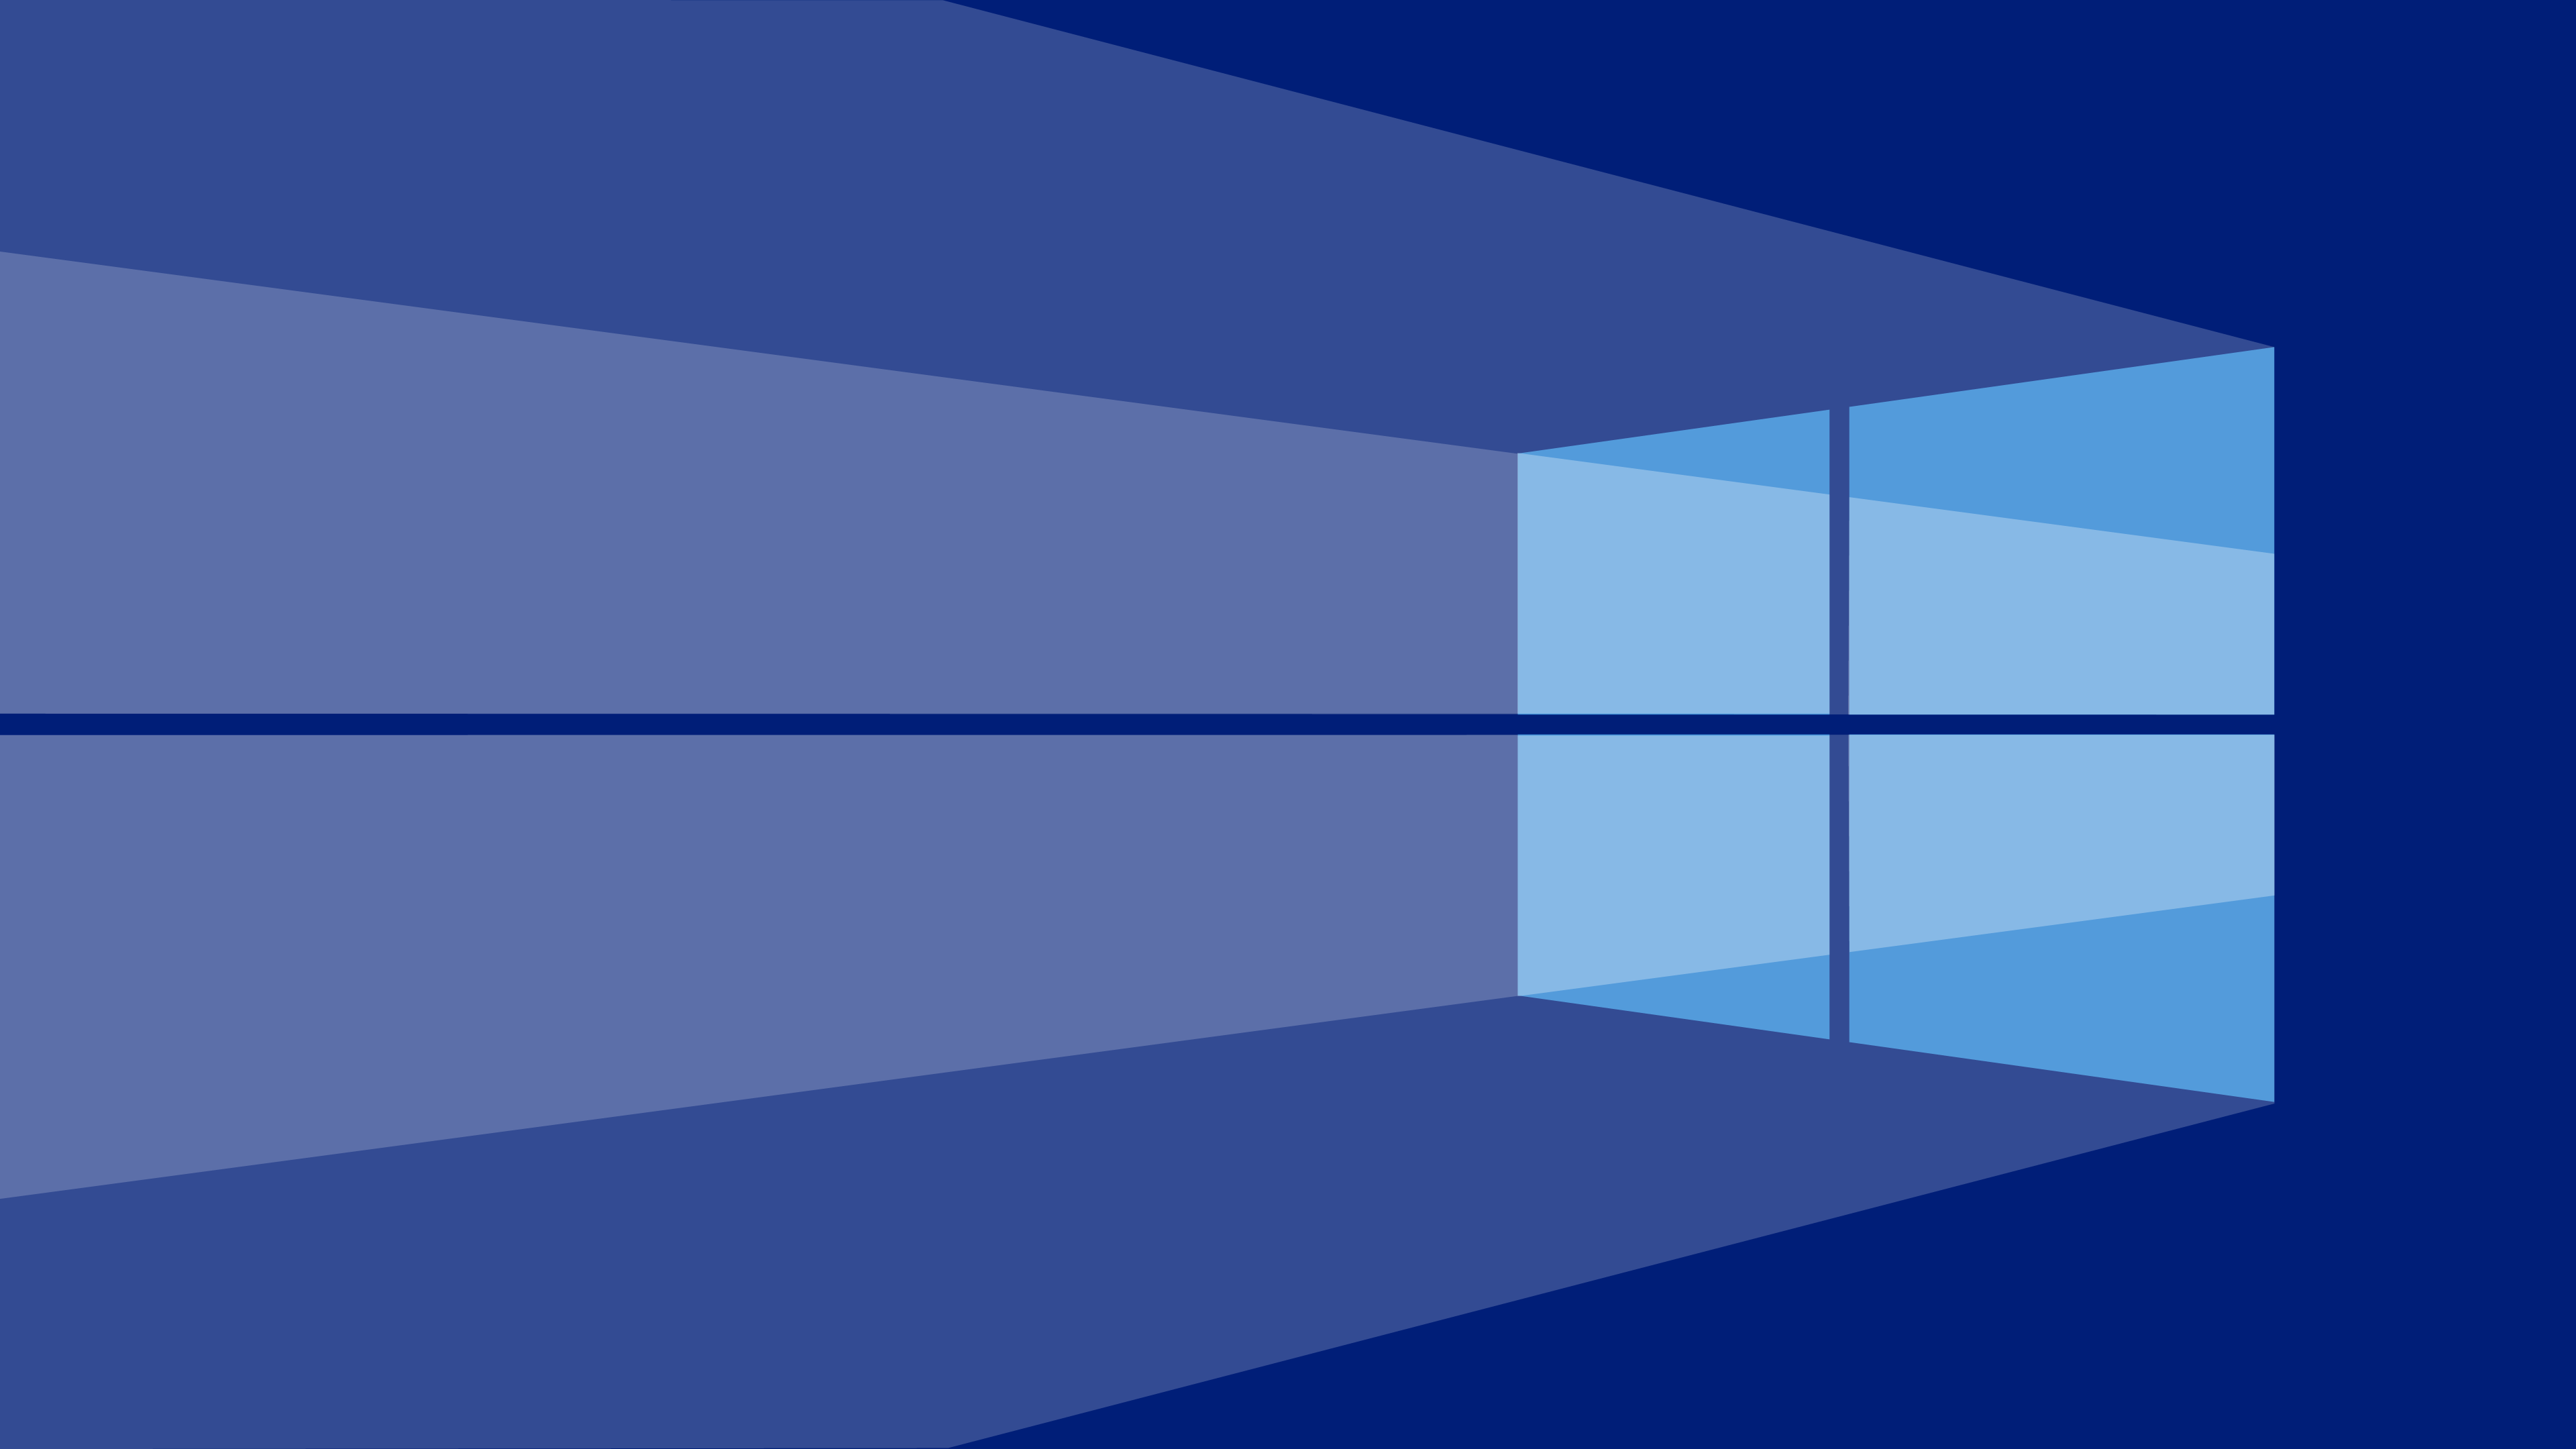 windows hd png transparent windows hd images. | pluspng